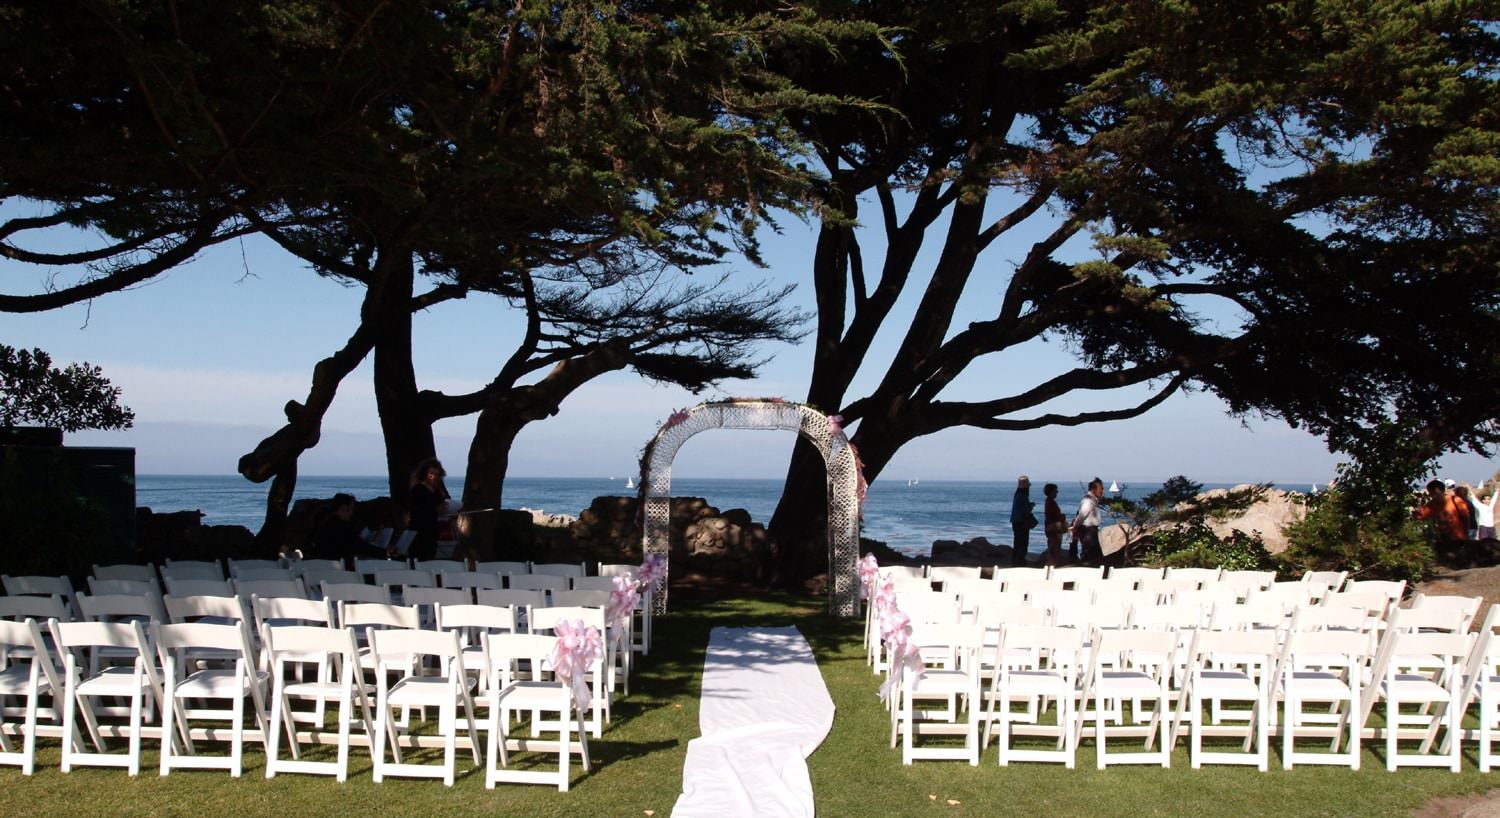 Set up before an outdoor wedding, arched trellis, aisle runner and rows of white chairs